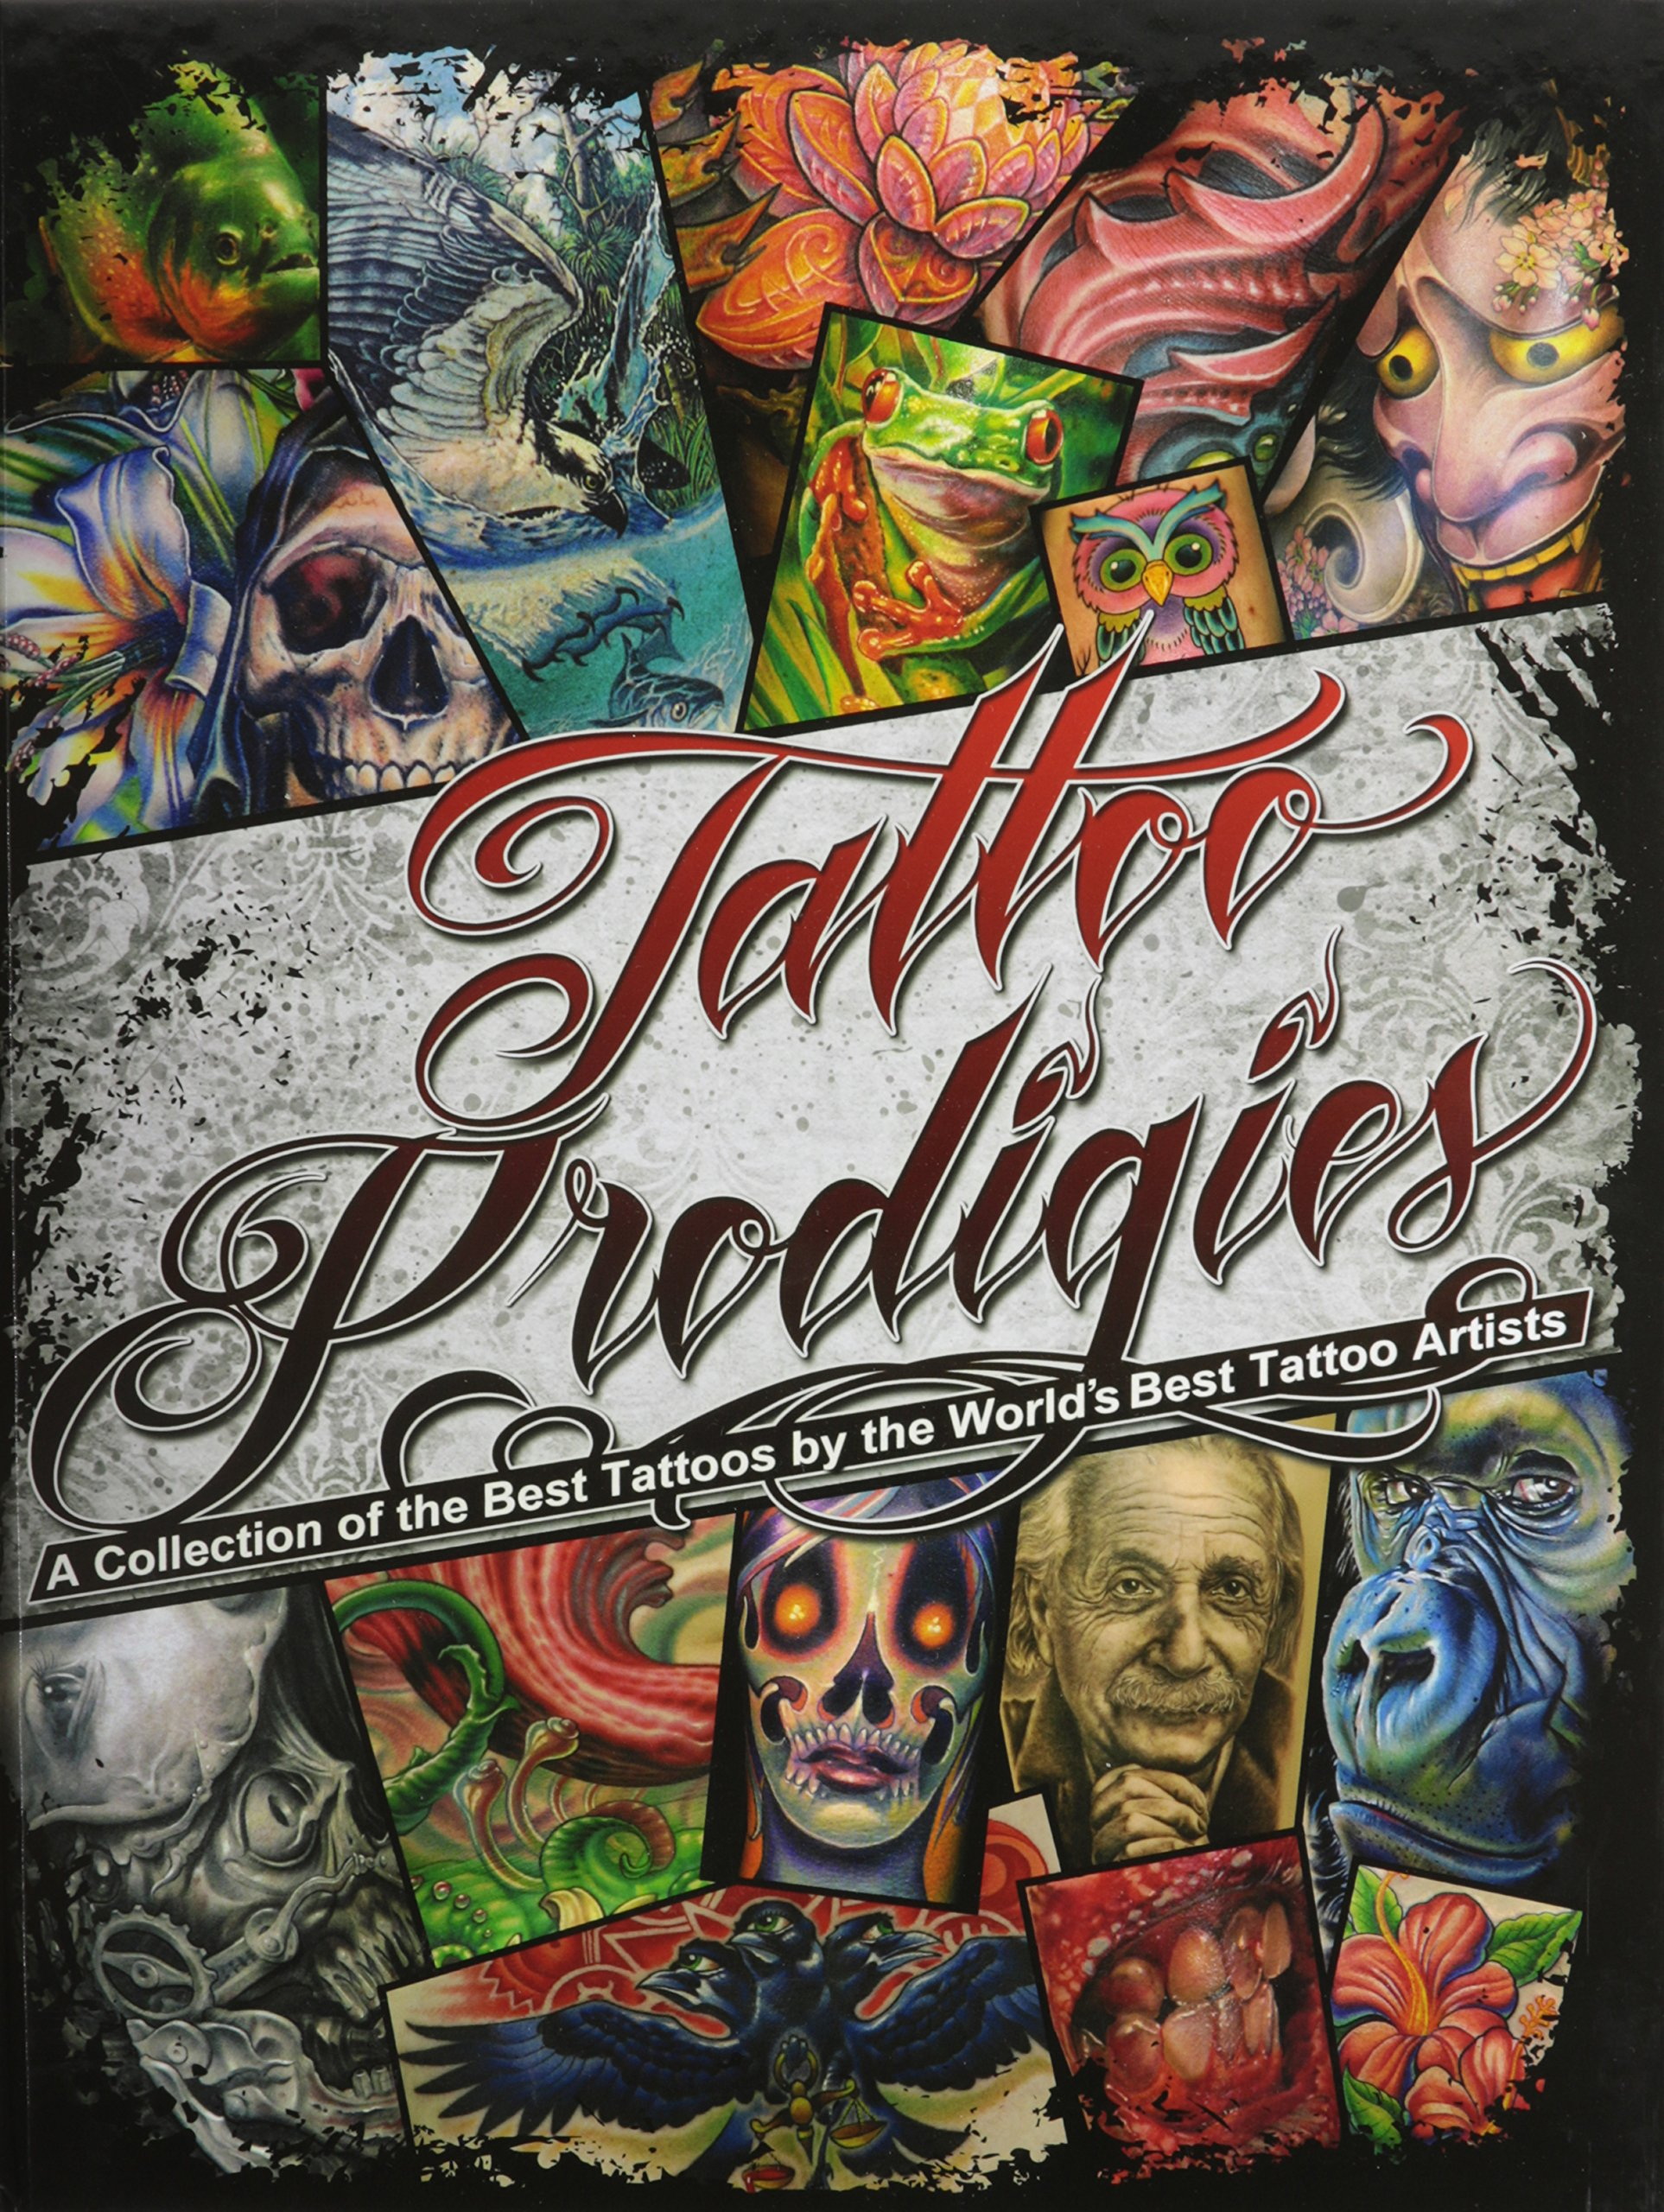 Tattoo Prodigies A Collection Of The Best Tattoos By The World S